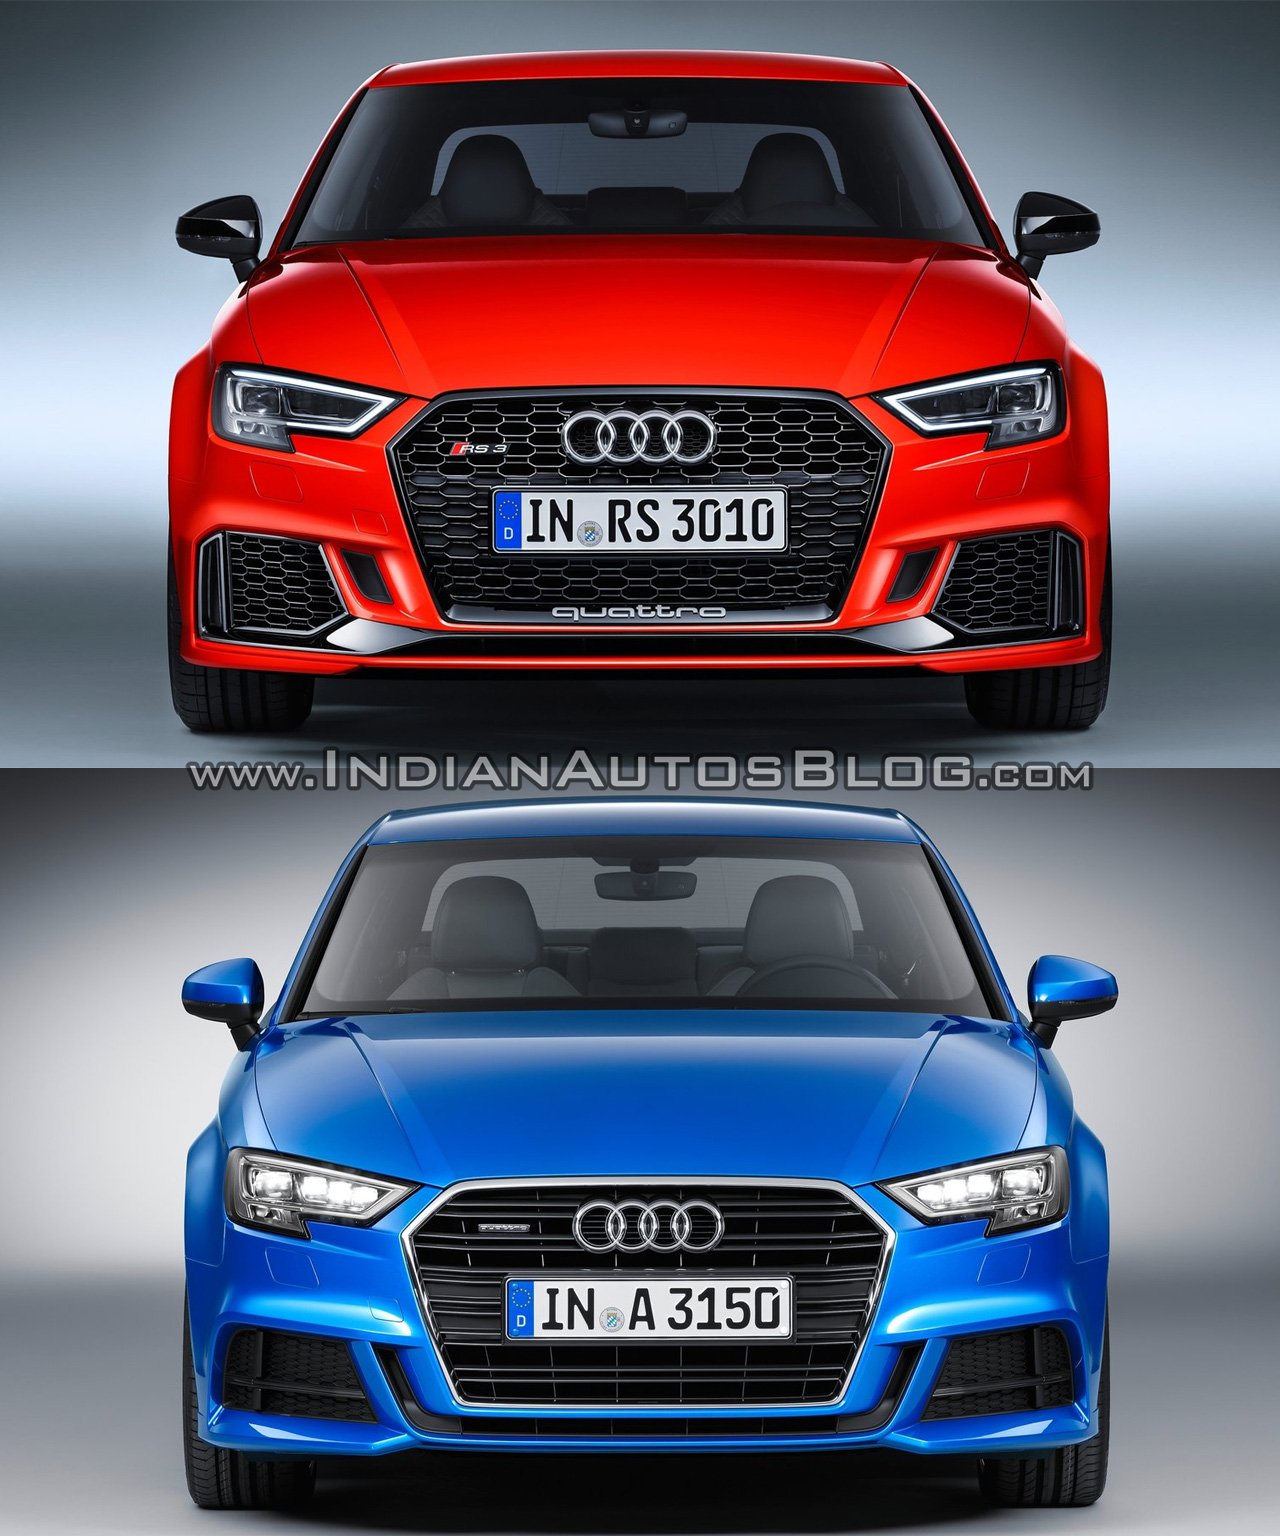 audi rs 3 sedan vs audi a3 sedan front. Black Bedroom Furniture Sets. Home Design Ideas